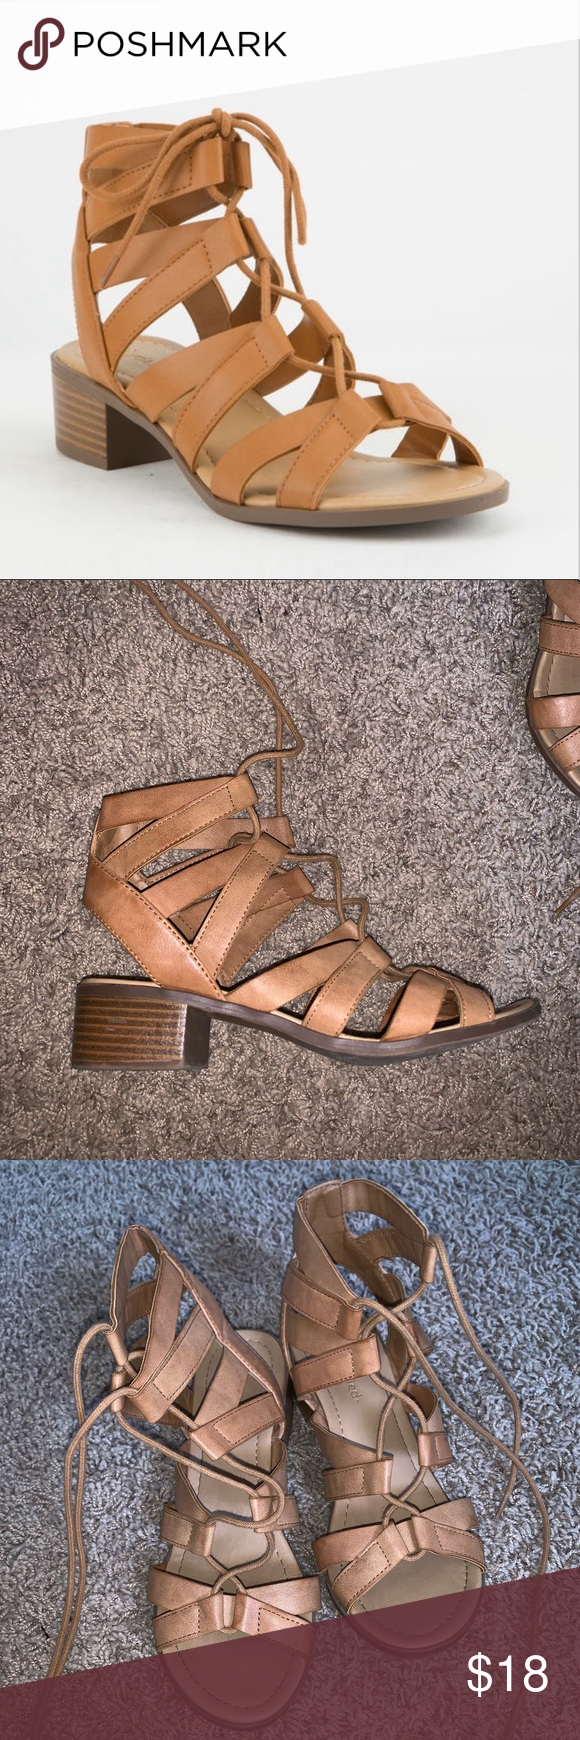 6febb634fef City classified strappy lace up cognac sandals 9 Size 9 women strappy lace  up sandals Cityclassified